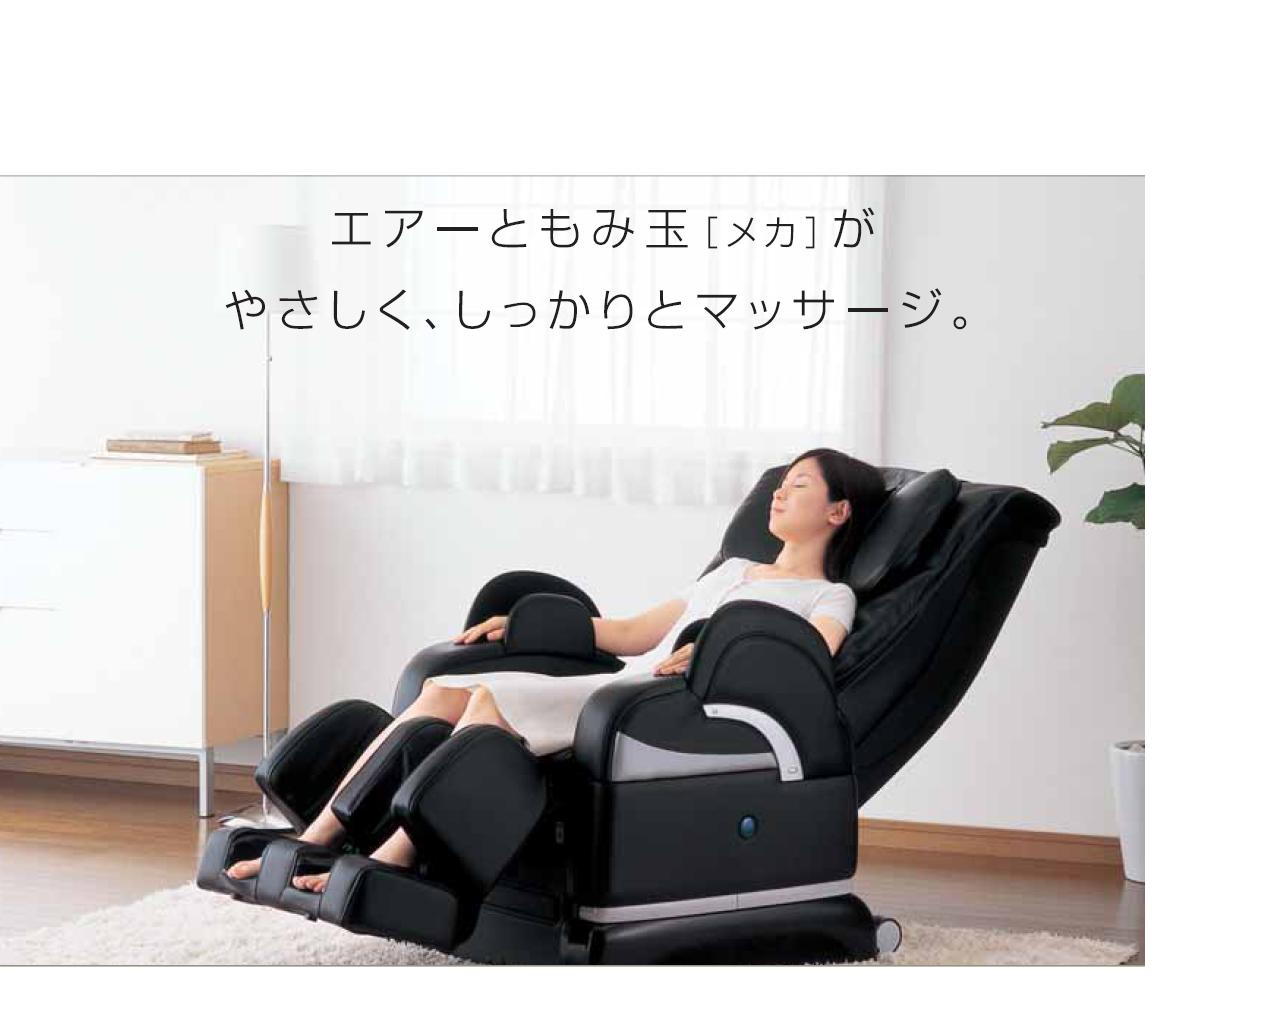 asian massage chairs ejection seat office chair yusuke japan blog in consumer electronics